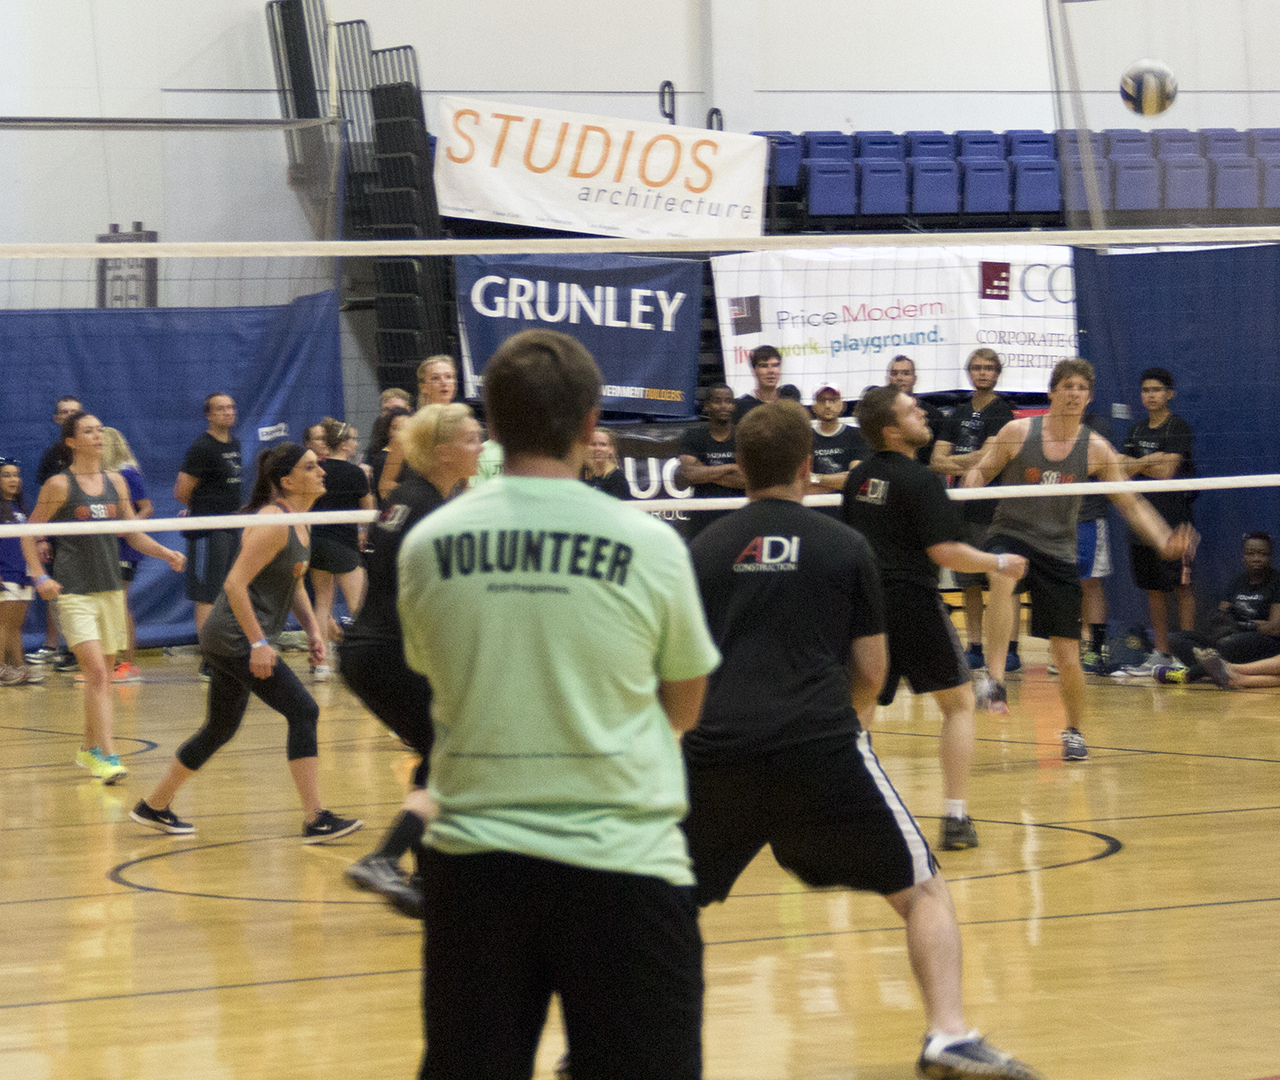 Students playing volleyball at the 2016 Real Estate Games